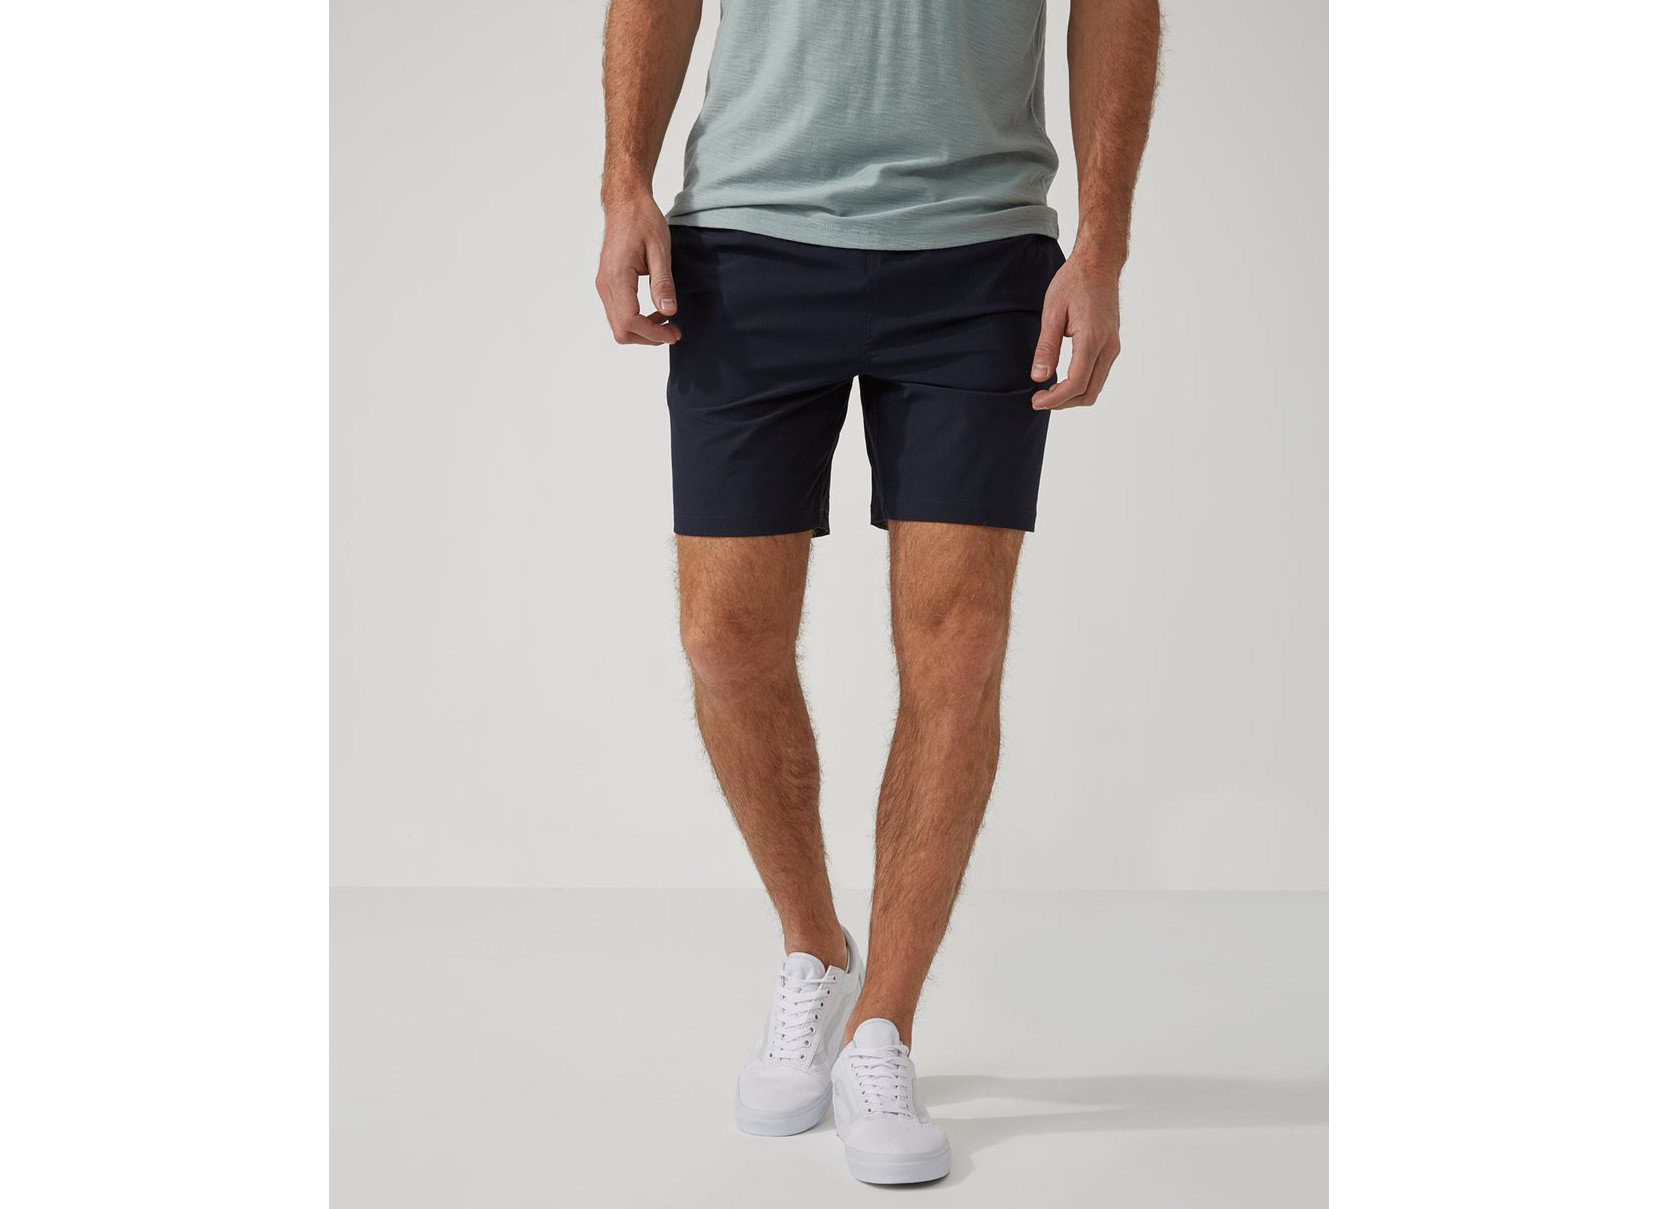 Style + Design person man clothing shorts standing trouser active shorts sportswear human leg waist pocket joint knee trousers shoe active pants posing male